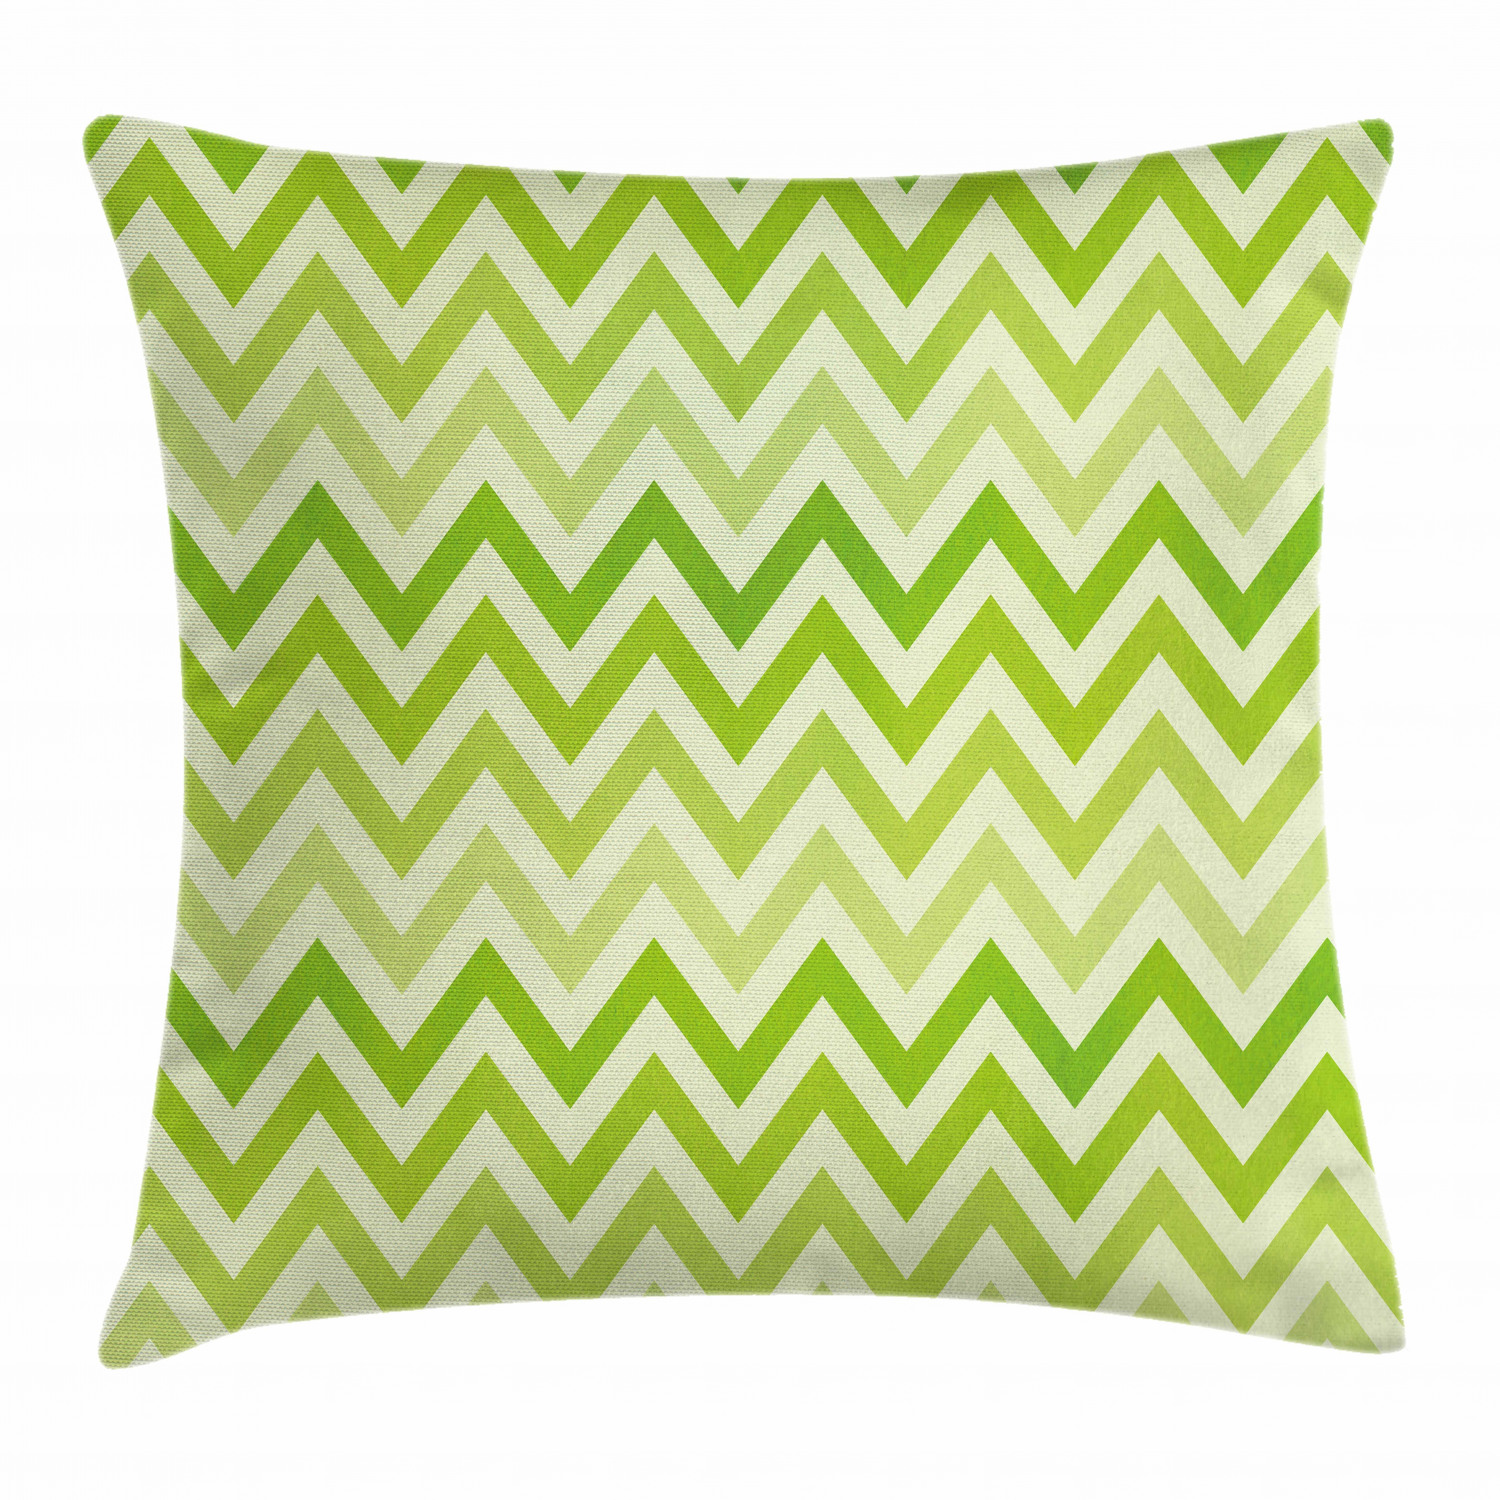 lime green throw pillow cushion cover chevron traditional zig zag pattern with symmetric lines tribal modern pattern decorative square accent pillow